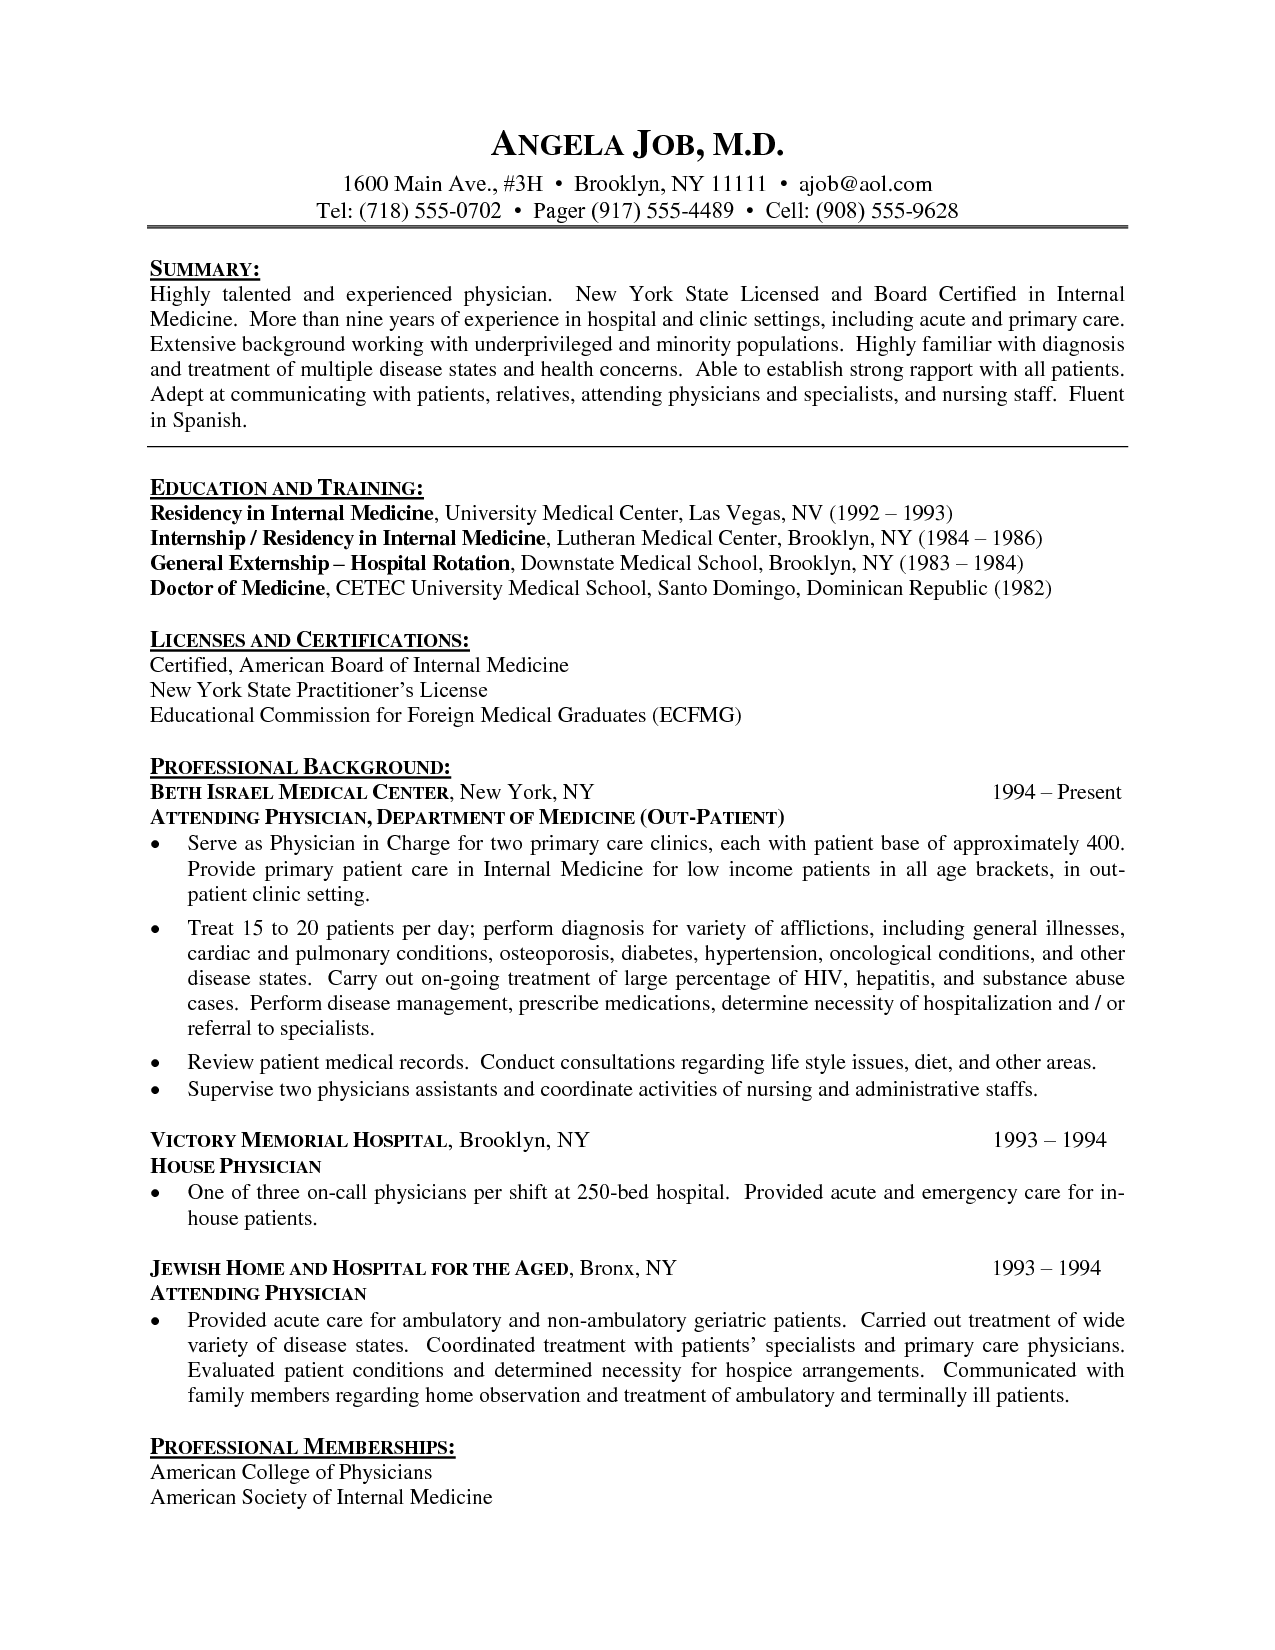 resume format for medical practitioner